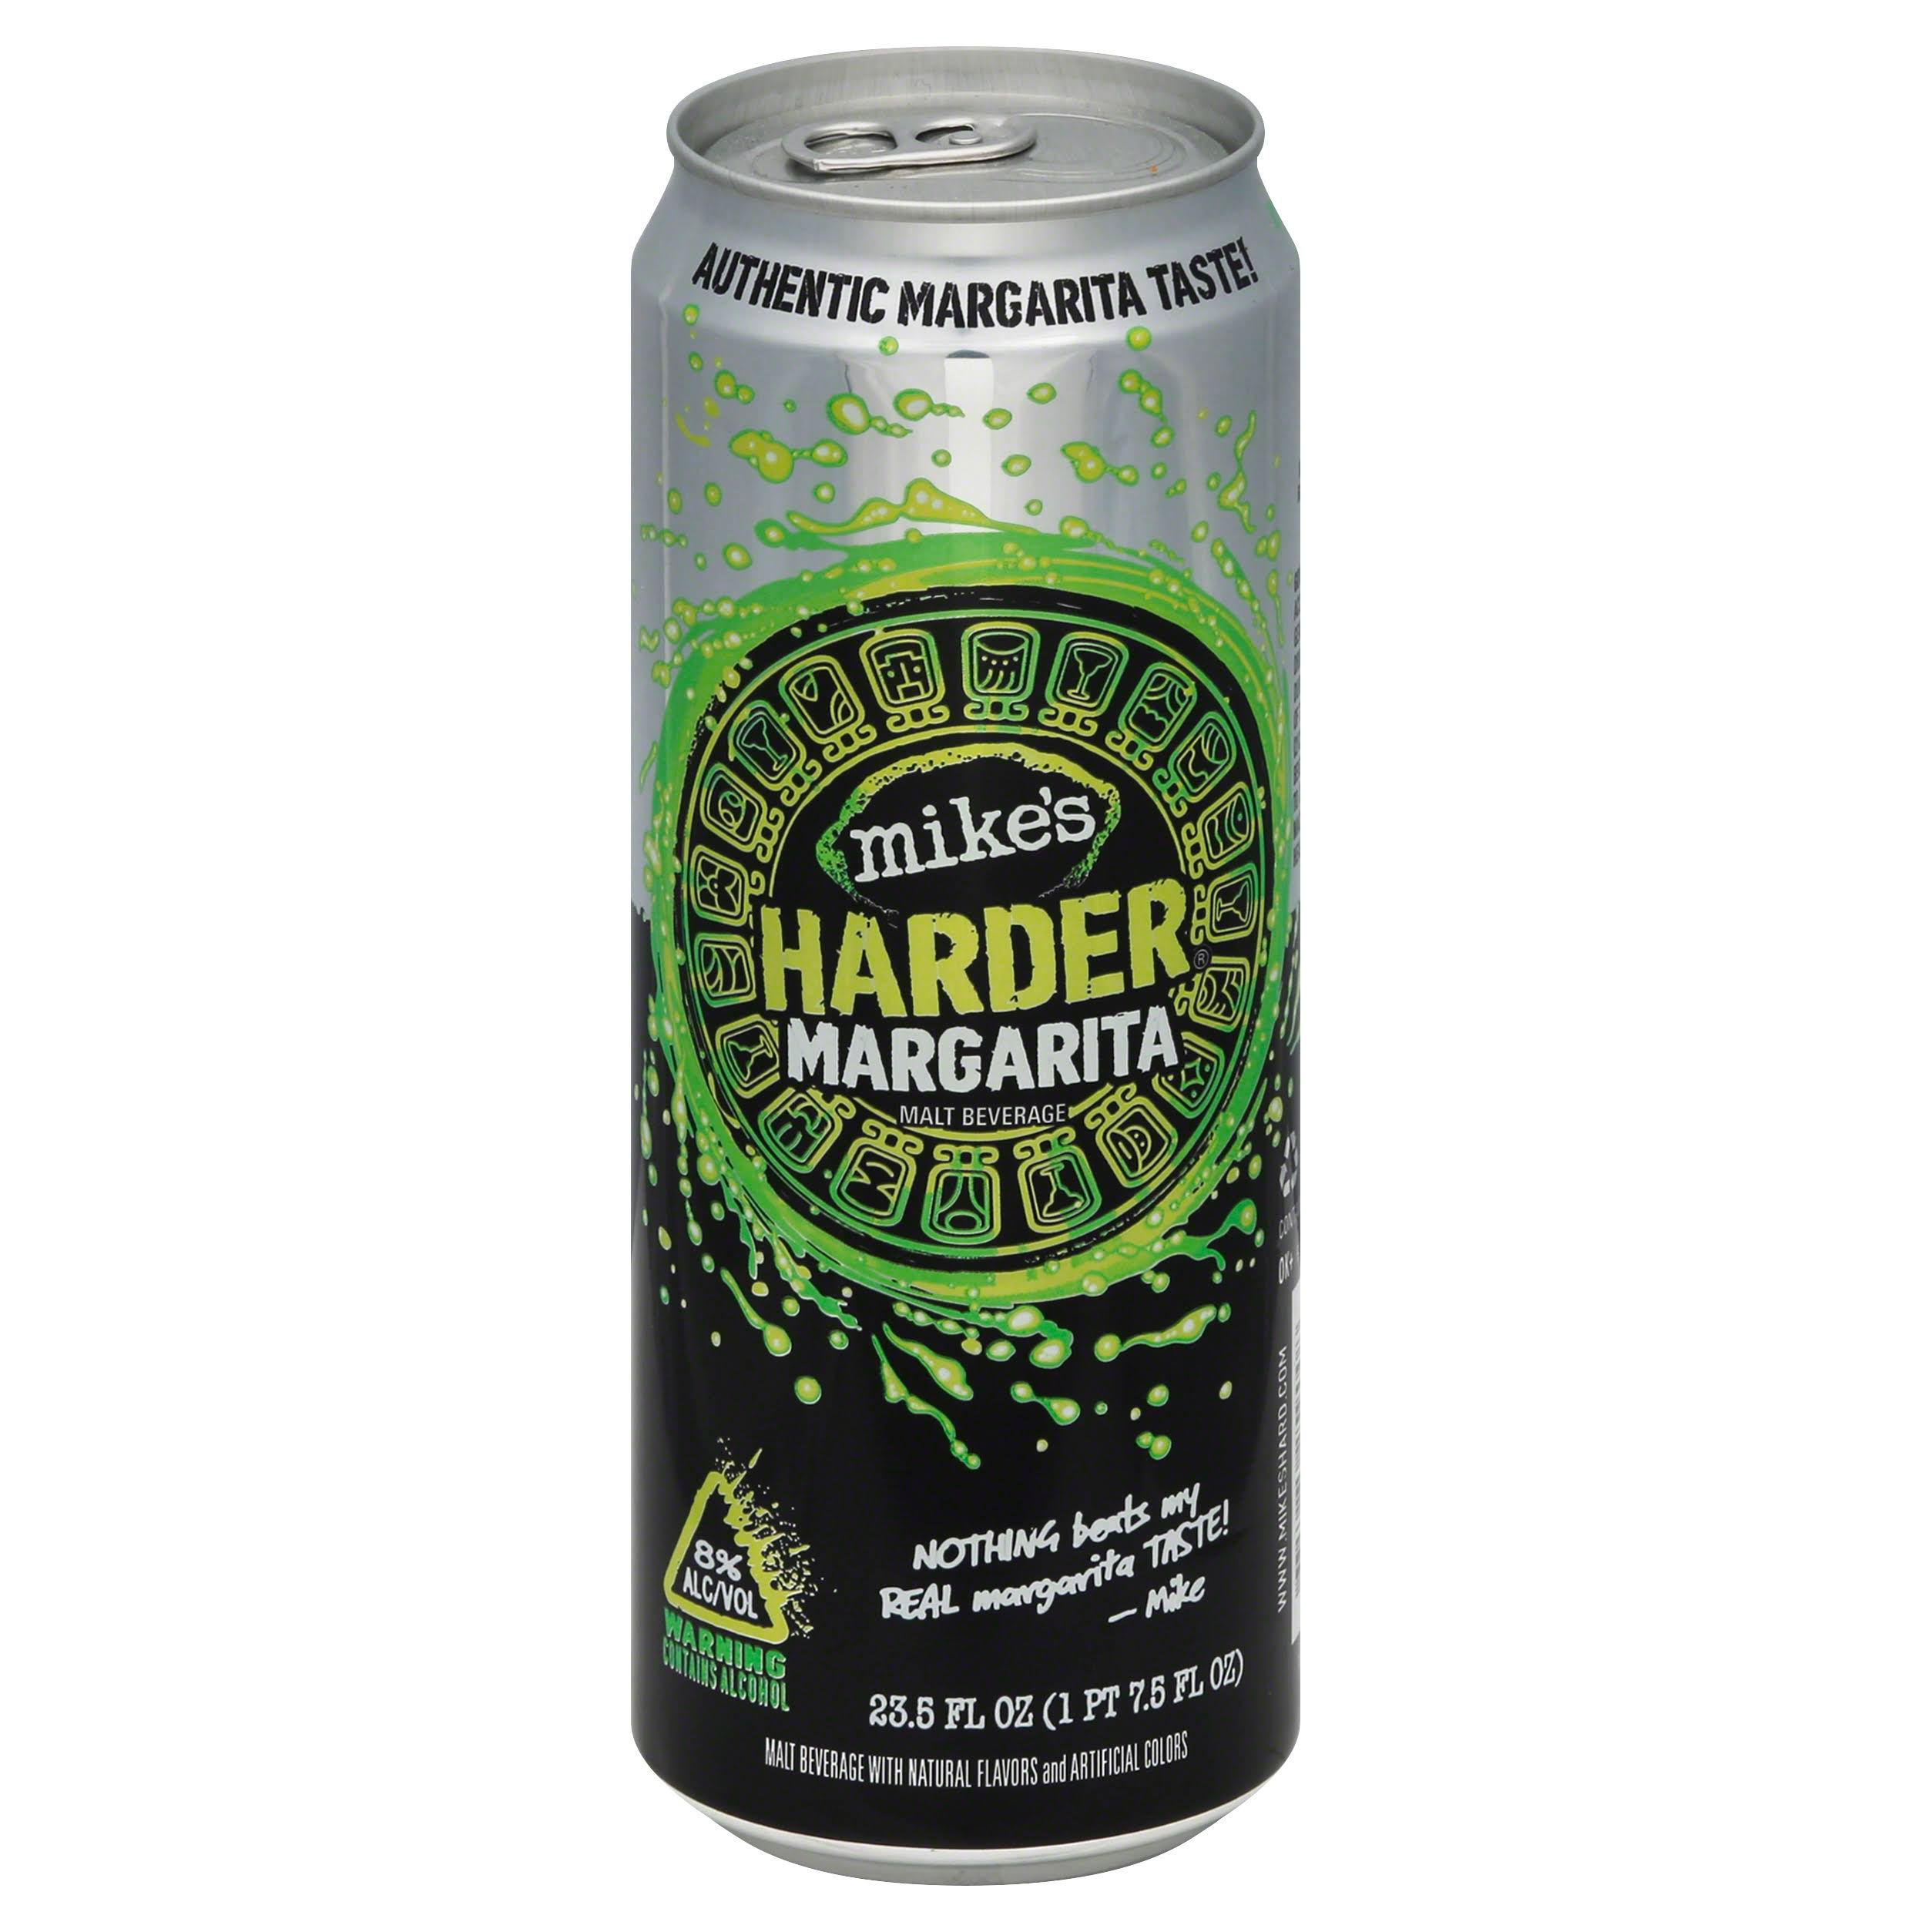 Mikes Malt Beverage, Harder Margarita - 23.5 fl oz